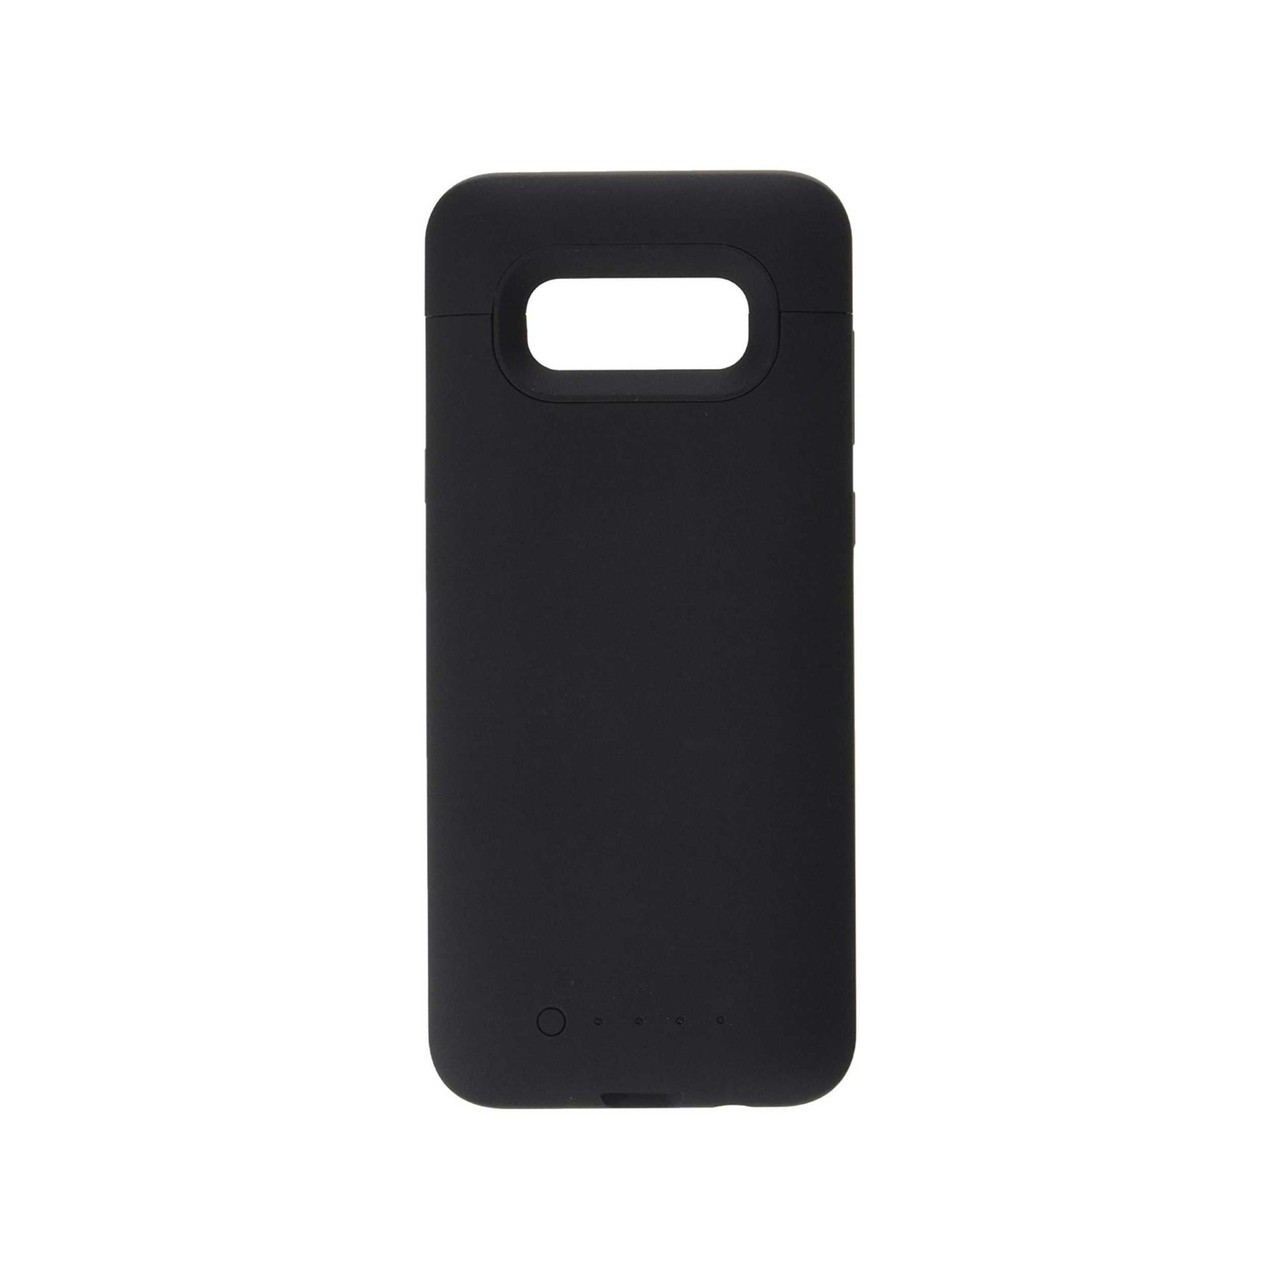 finest selection c4aad 0c91e Mophie Juice Pack 3300 mAh Battery Case for Samsung Galaxy S8+ - Black